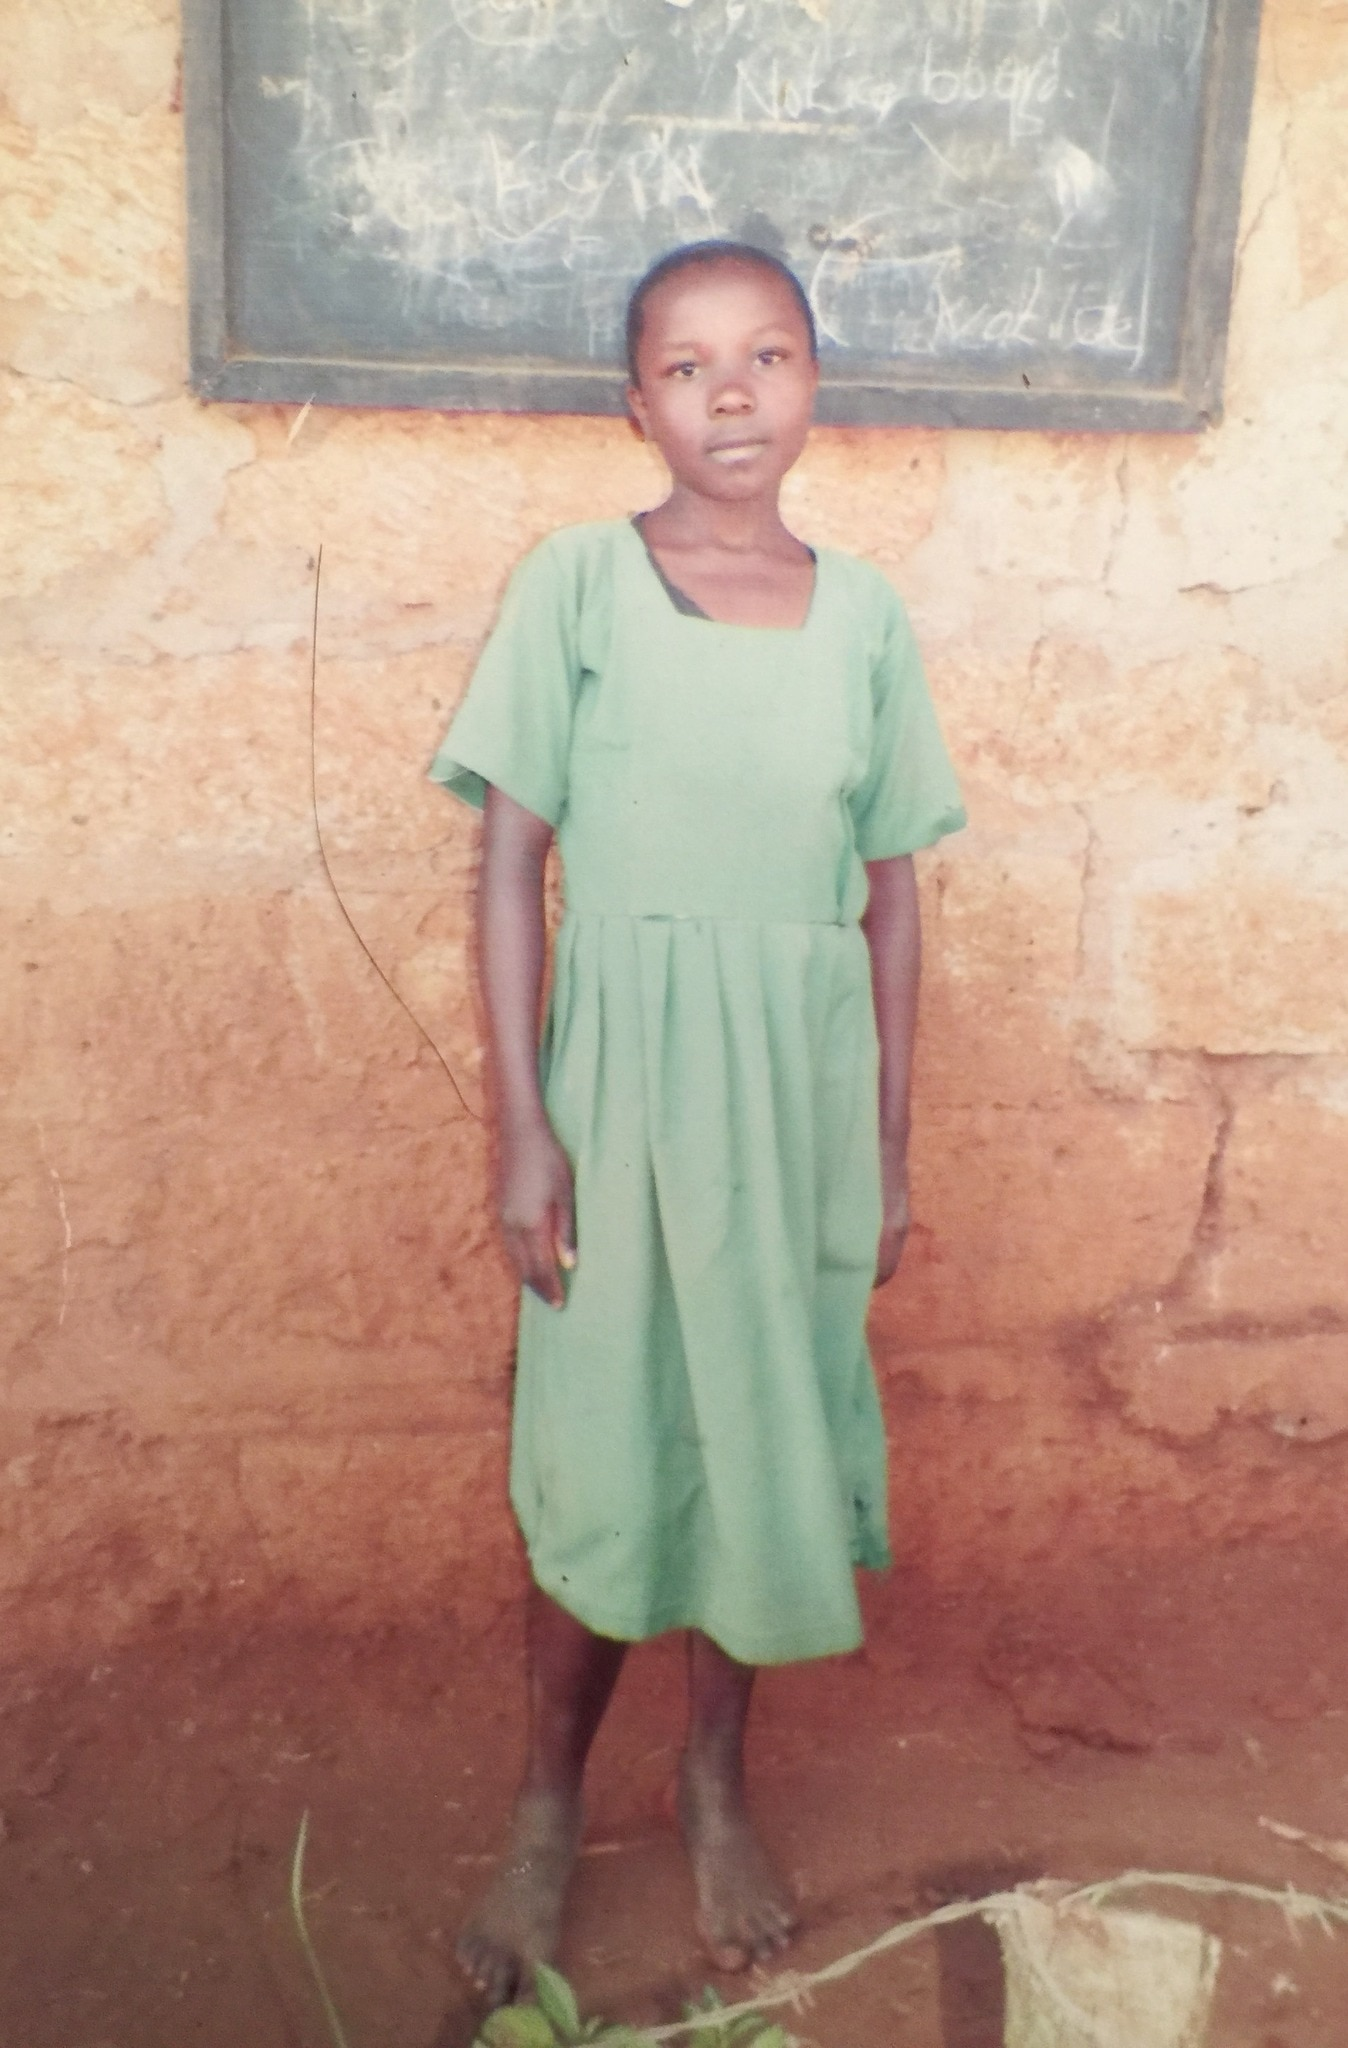 Pamela is in 5th grade.  She is an orphan.  Thanks to sponsors in Boca Raton, Florida, Pamela can now go to school.